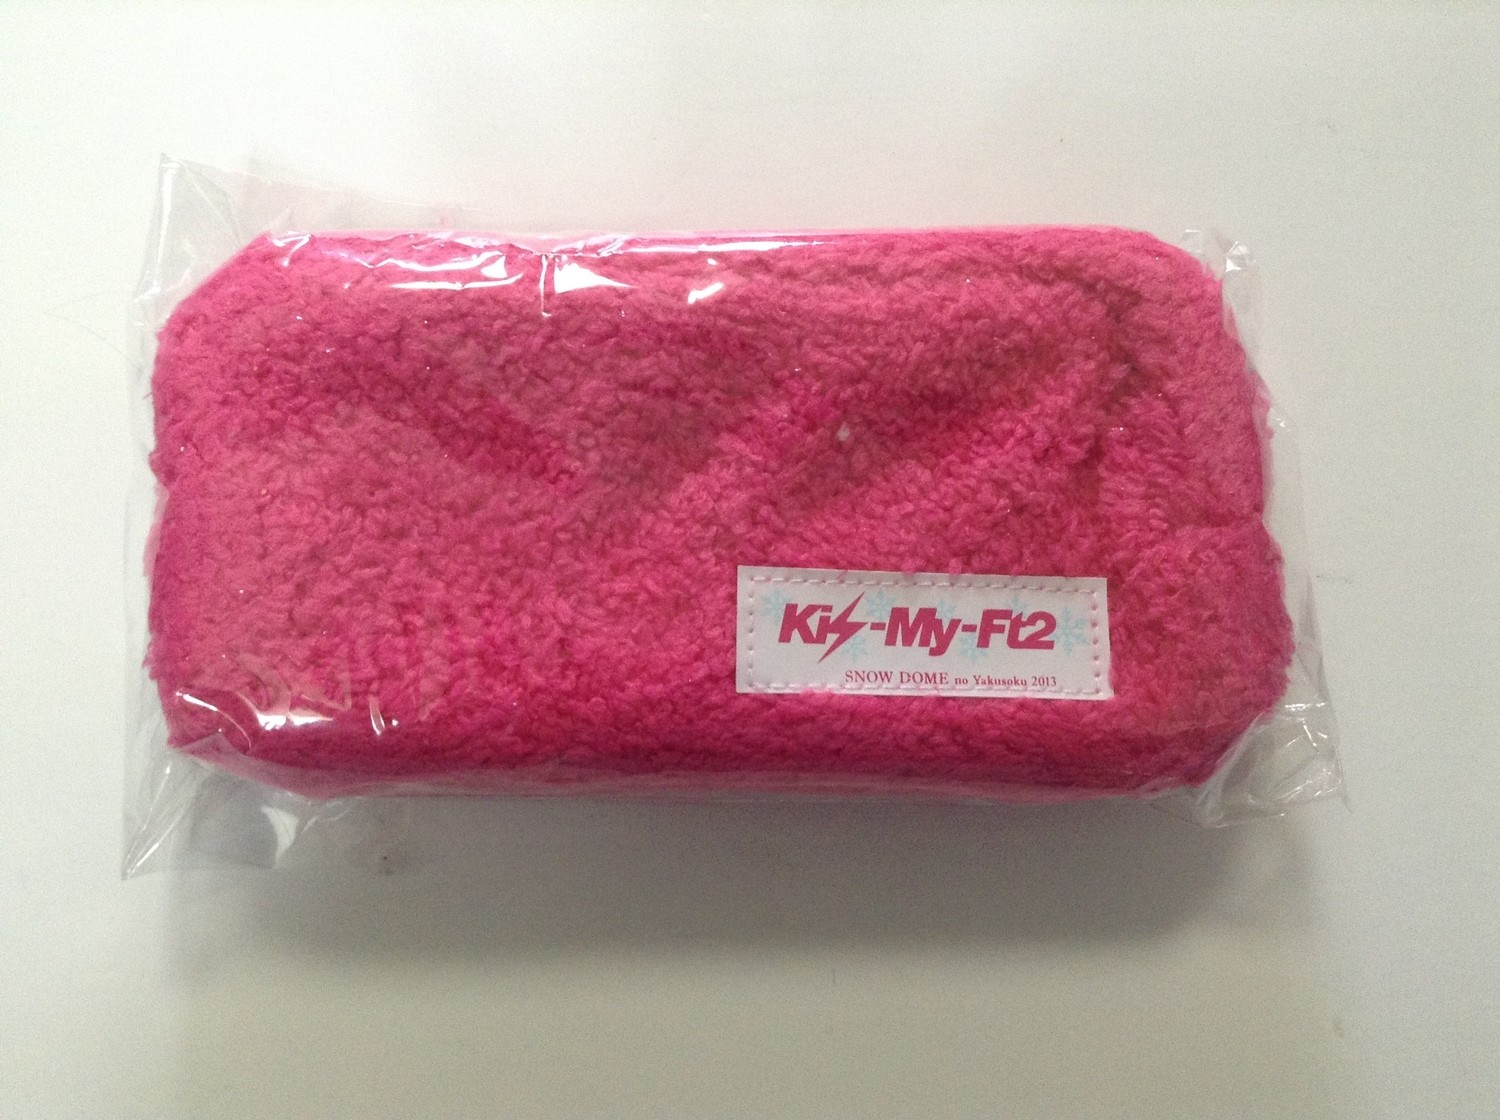 Kis-My-Ft2 Snow Dome Pouch